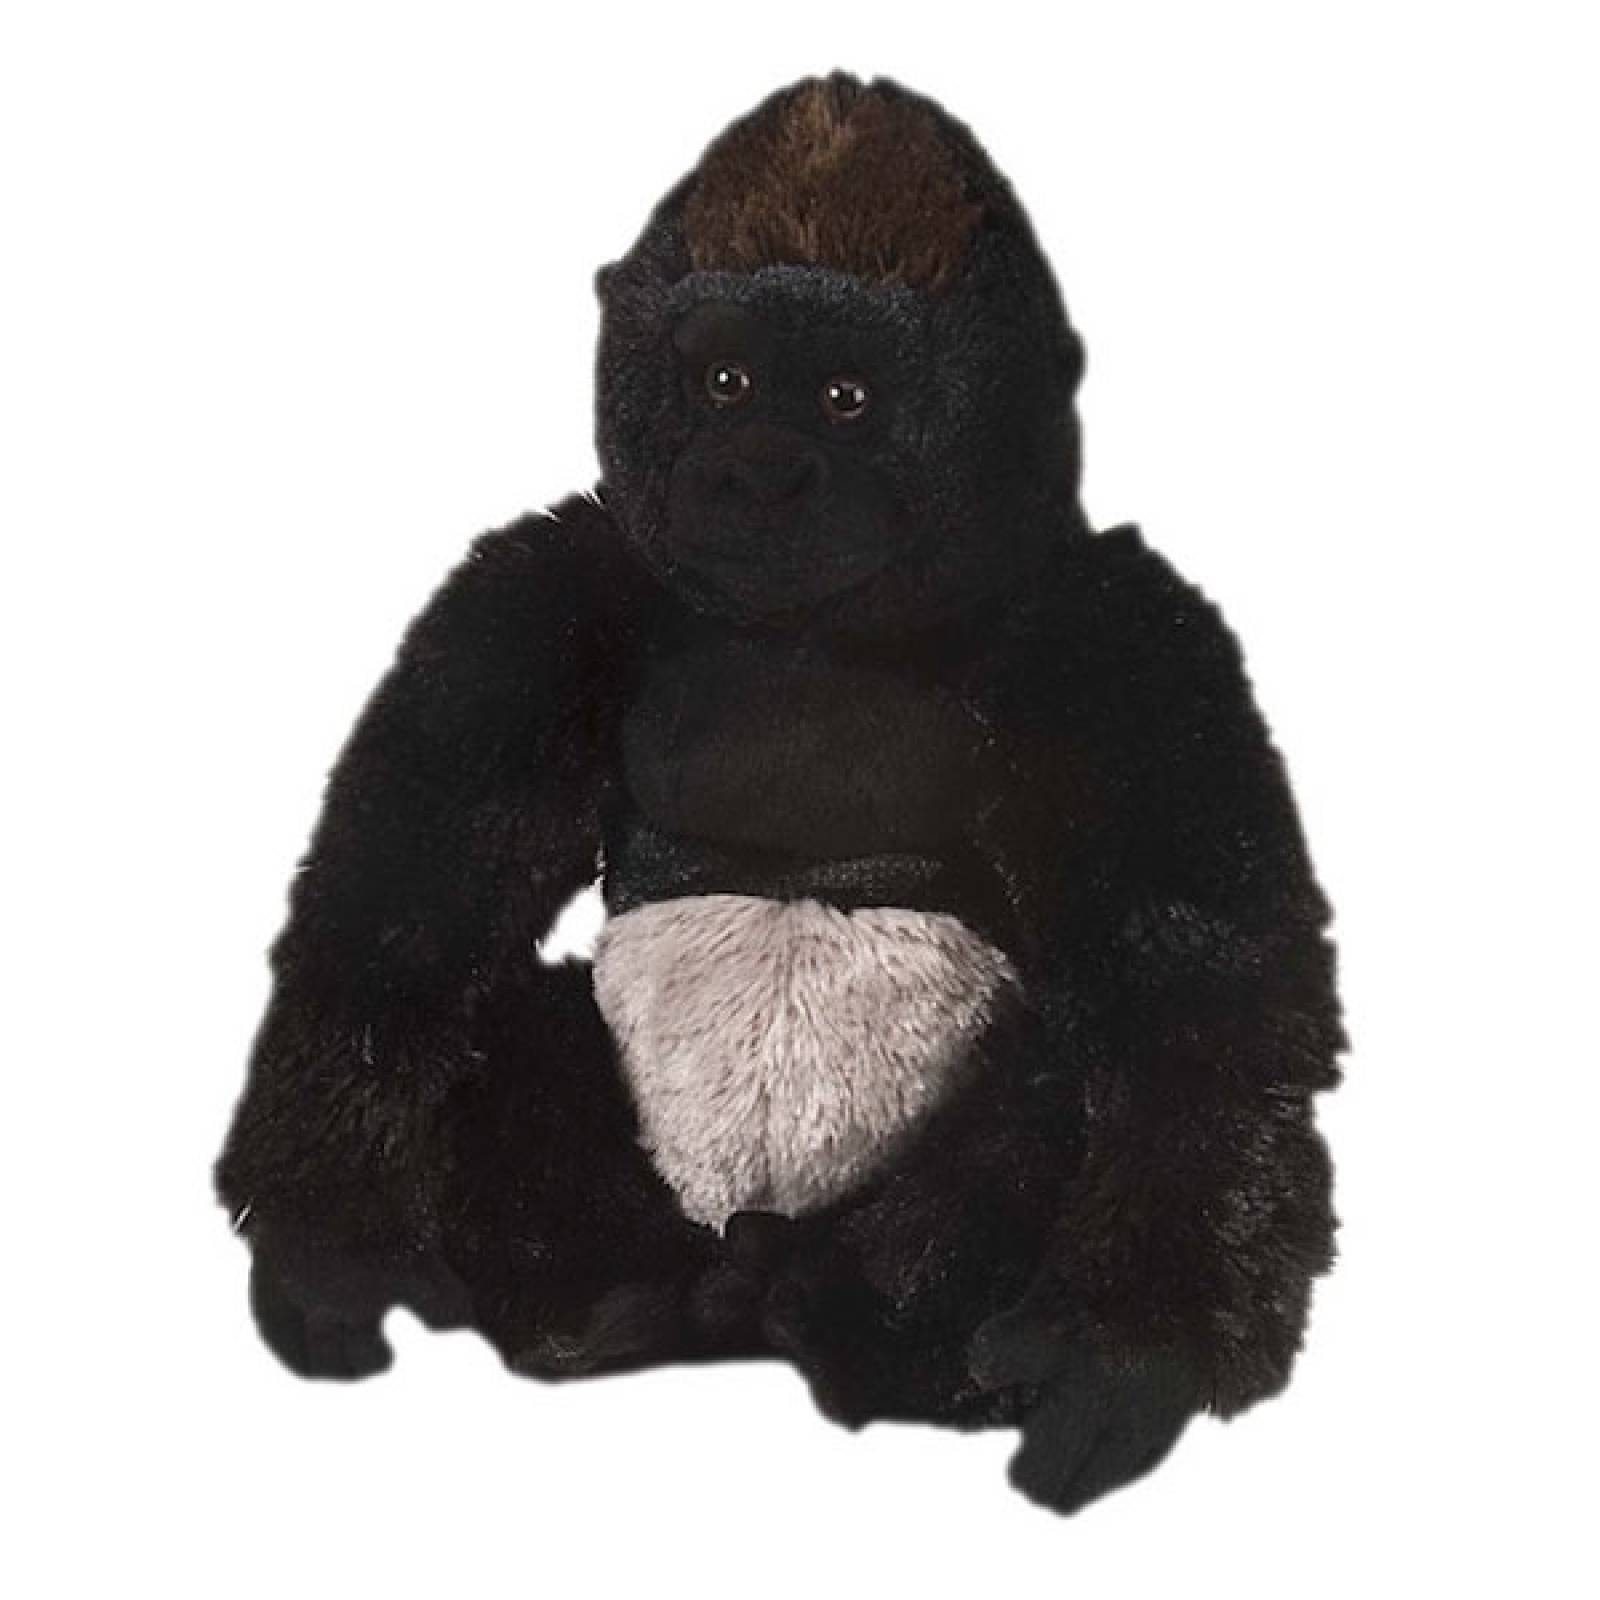 Sitting Silverback Gorilla Soft Toy 30cm